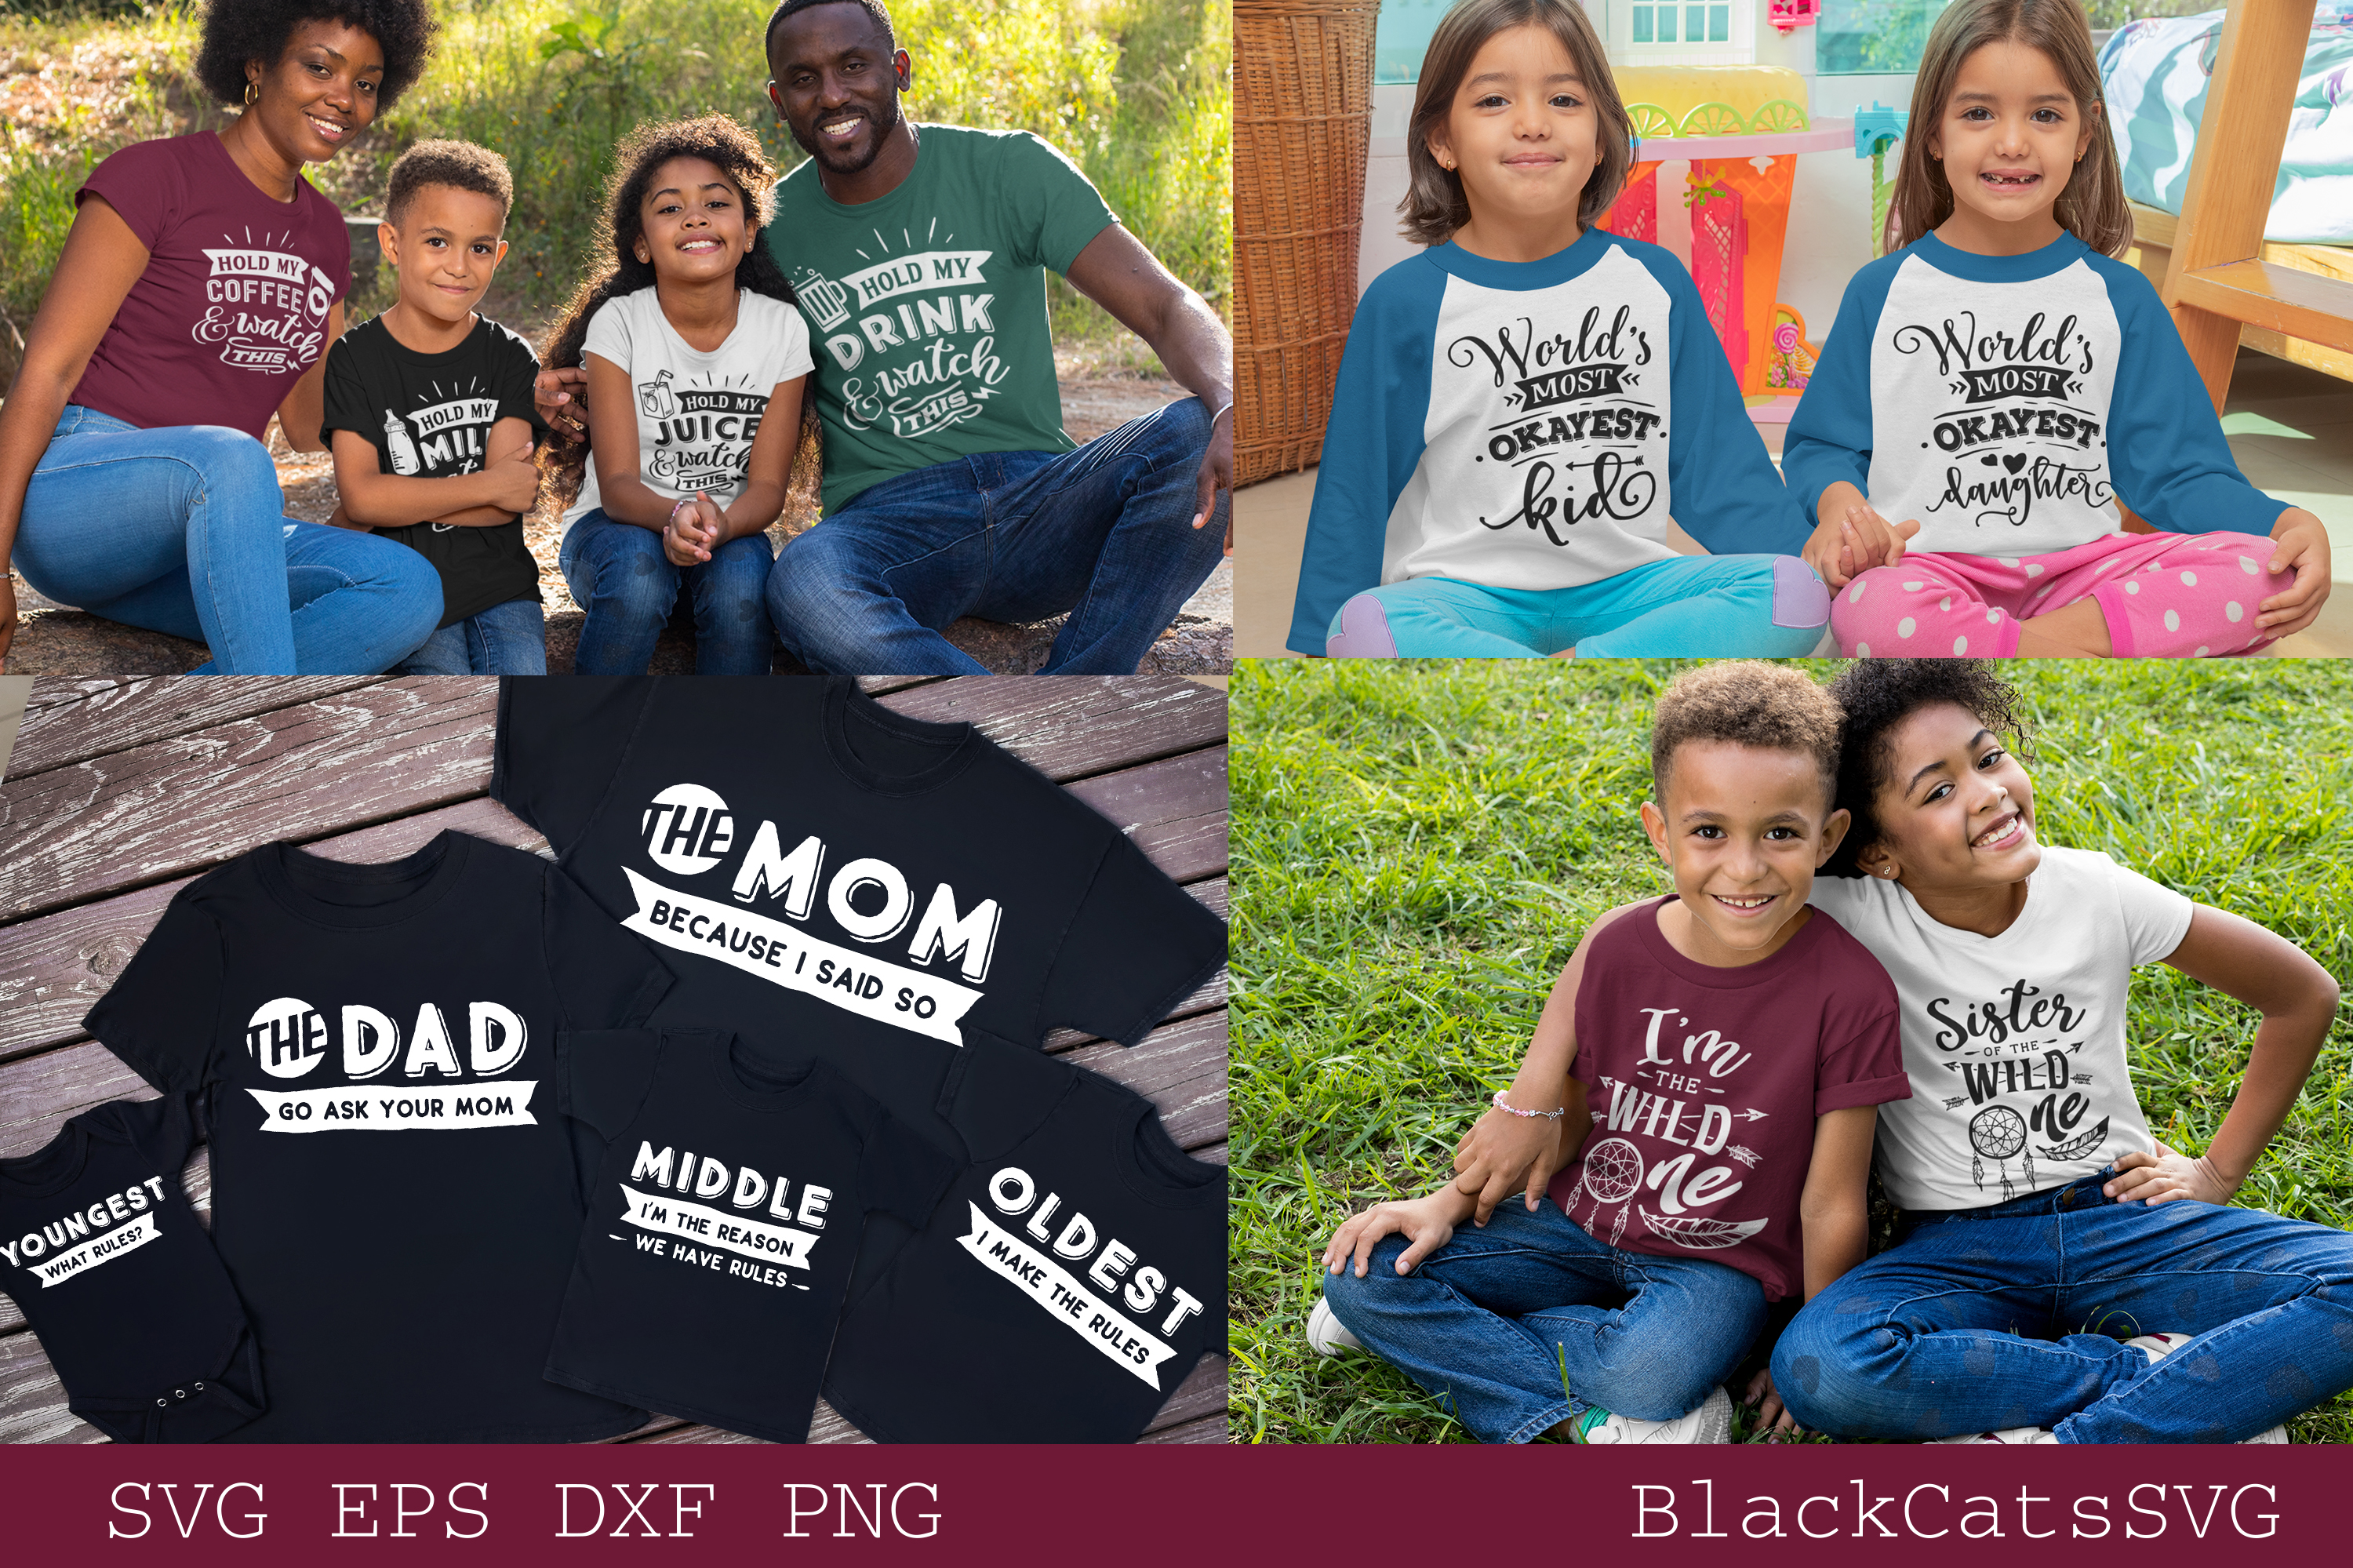 Family matching outfits SVG bundle 50 designs vol 1 example image 3